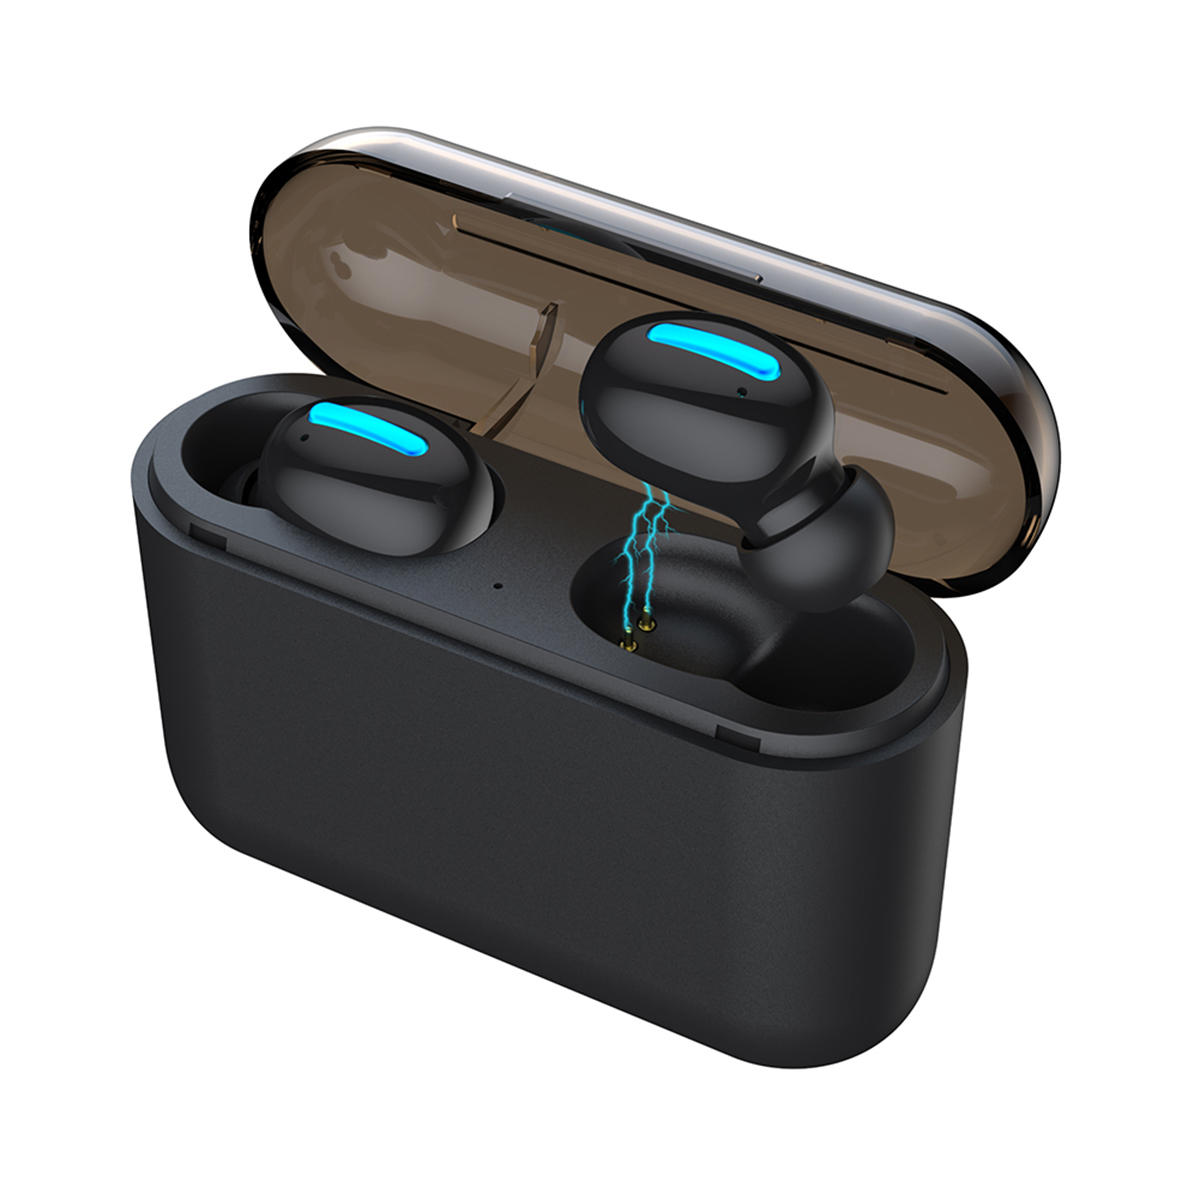 Haylou GT1 TWS Wireless bluetooth 5.0 Earphone HiFi Smart Touch Bilateral Call DSP Noise Cancelling Headphone from xiaomi Eco-System - 1